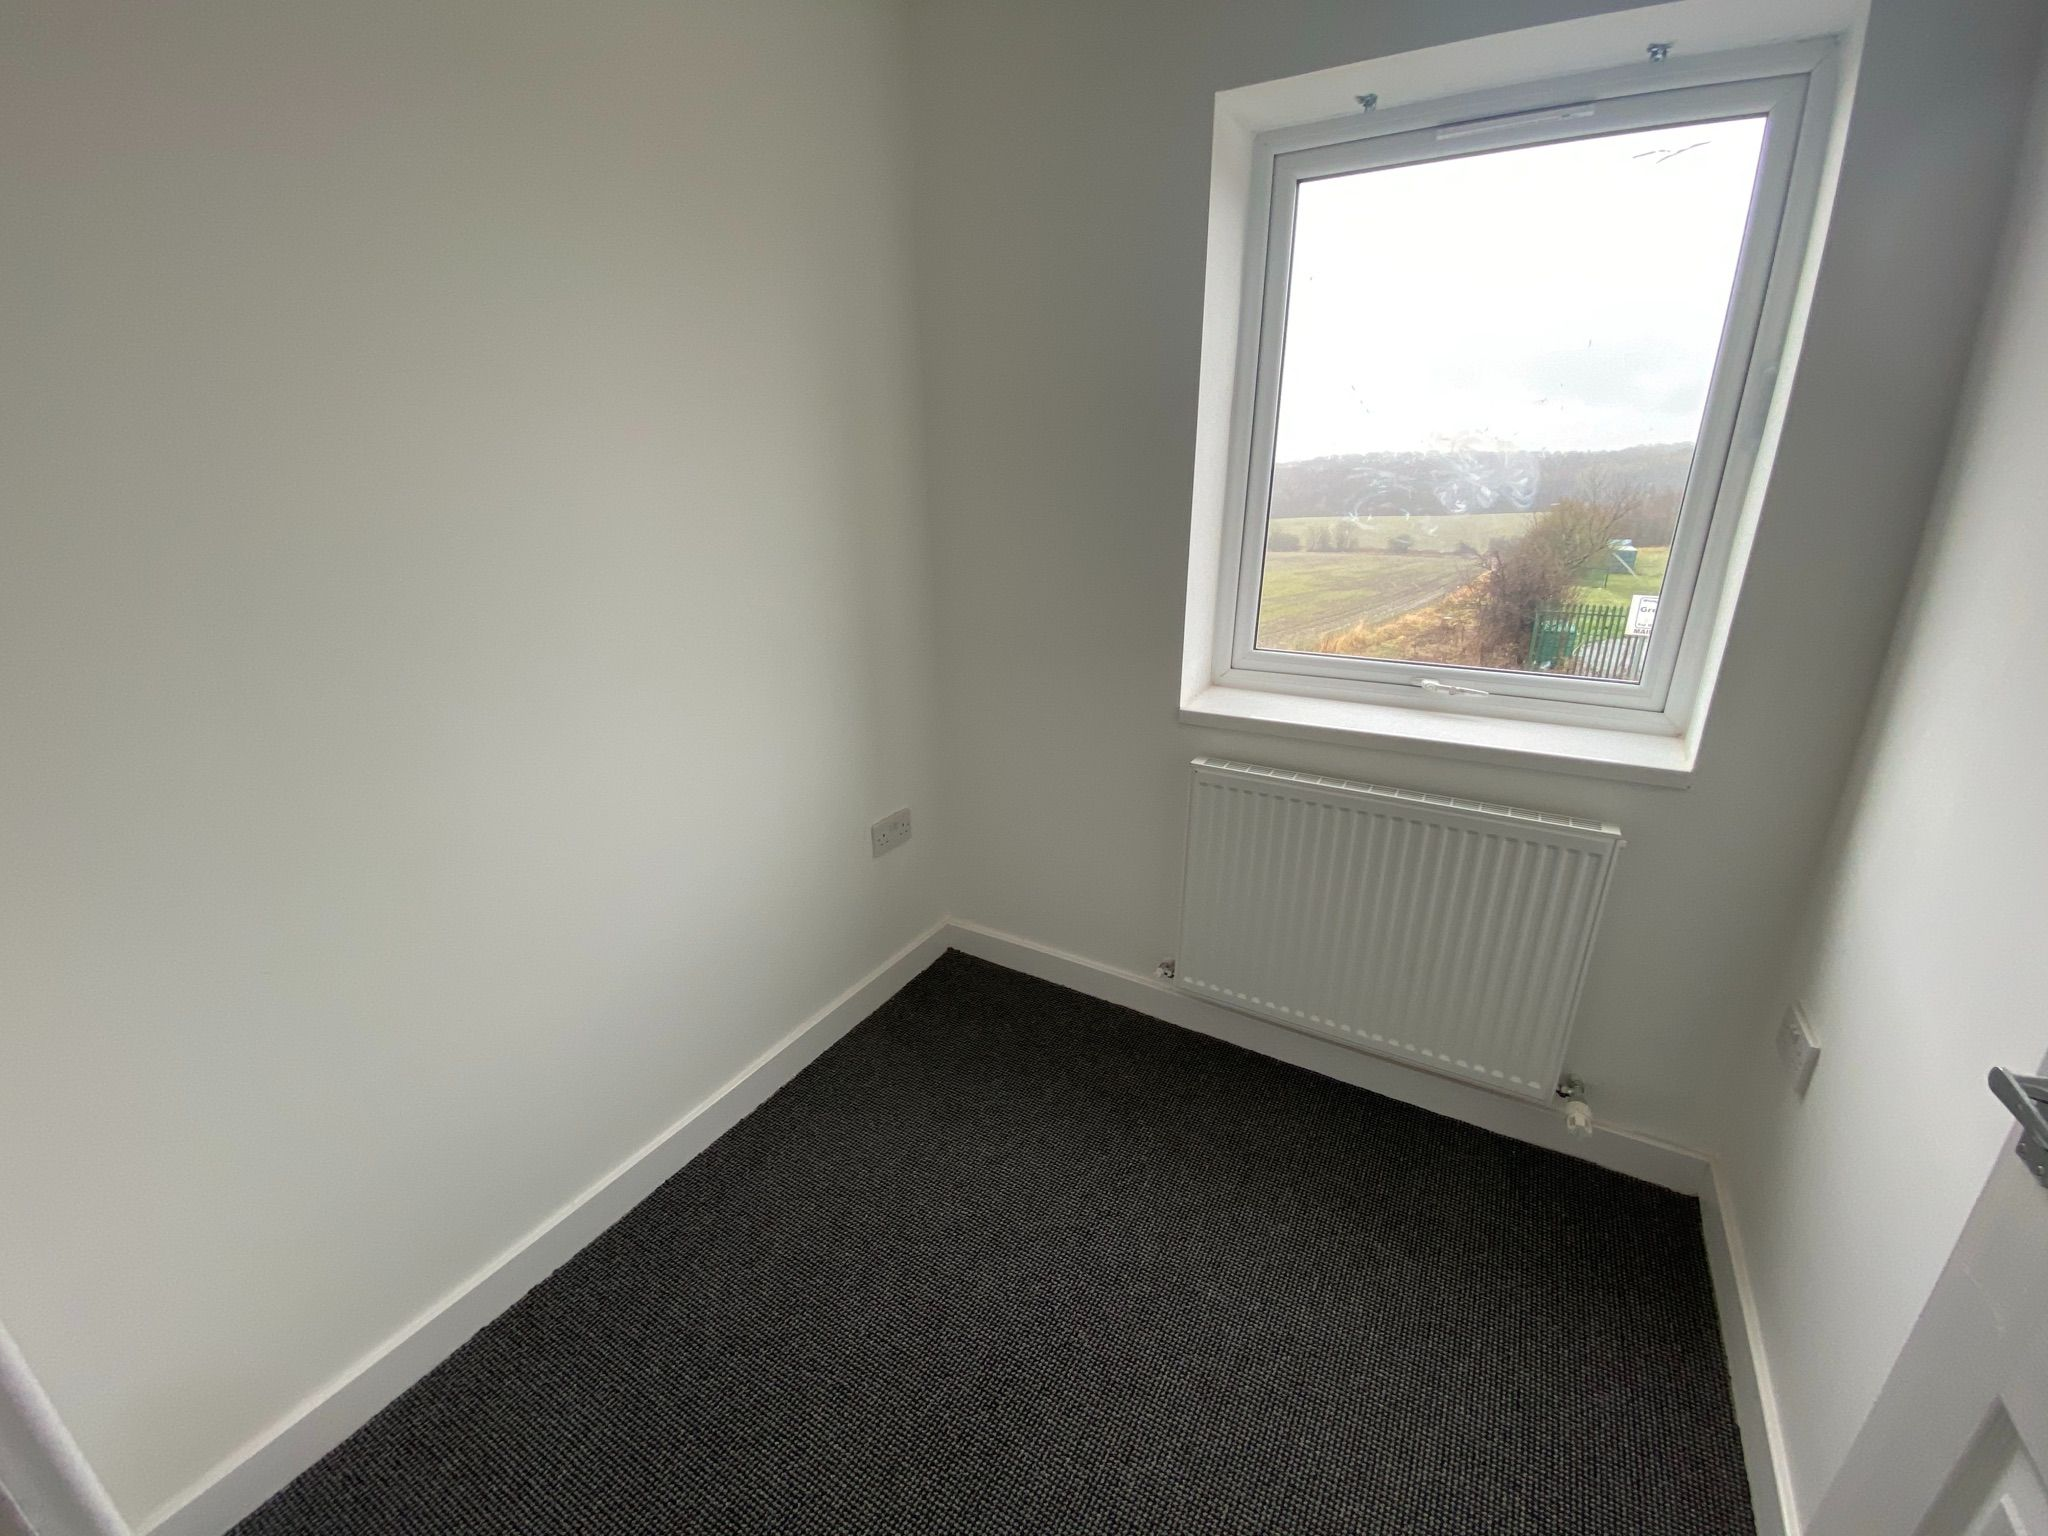 4 bedroom detached house For Sale in Durham - Photograph 7.